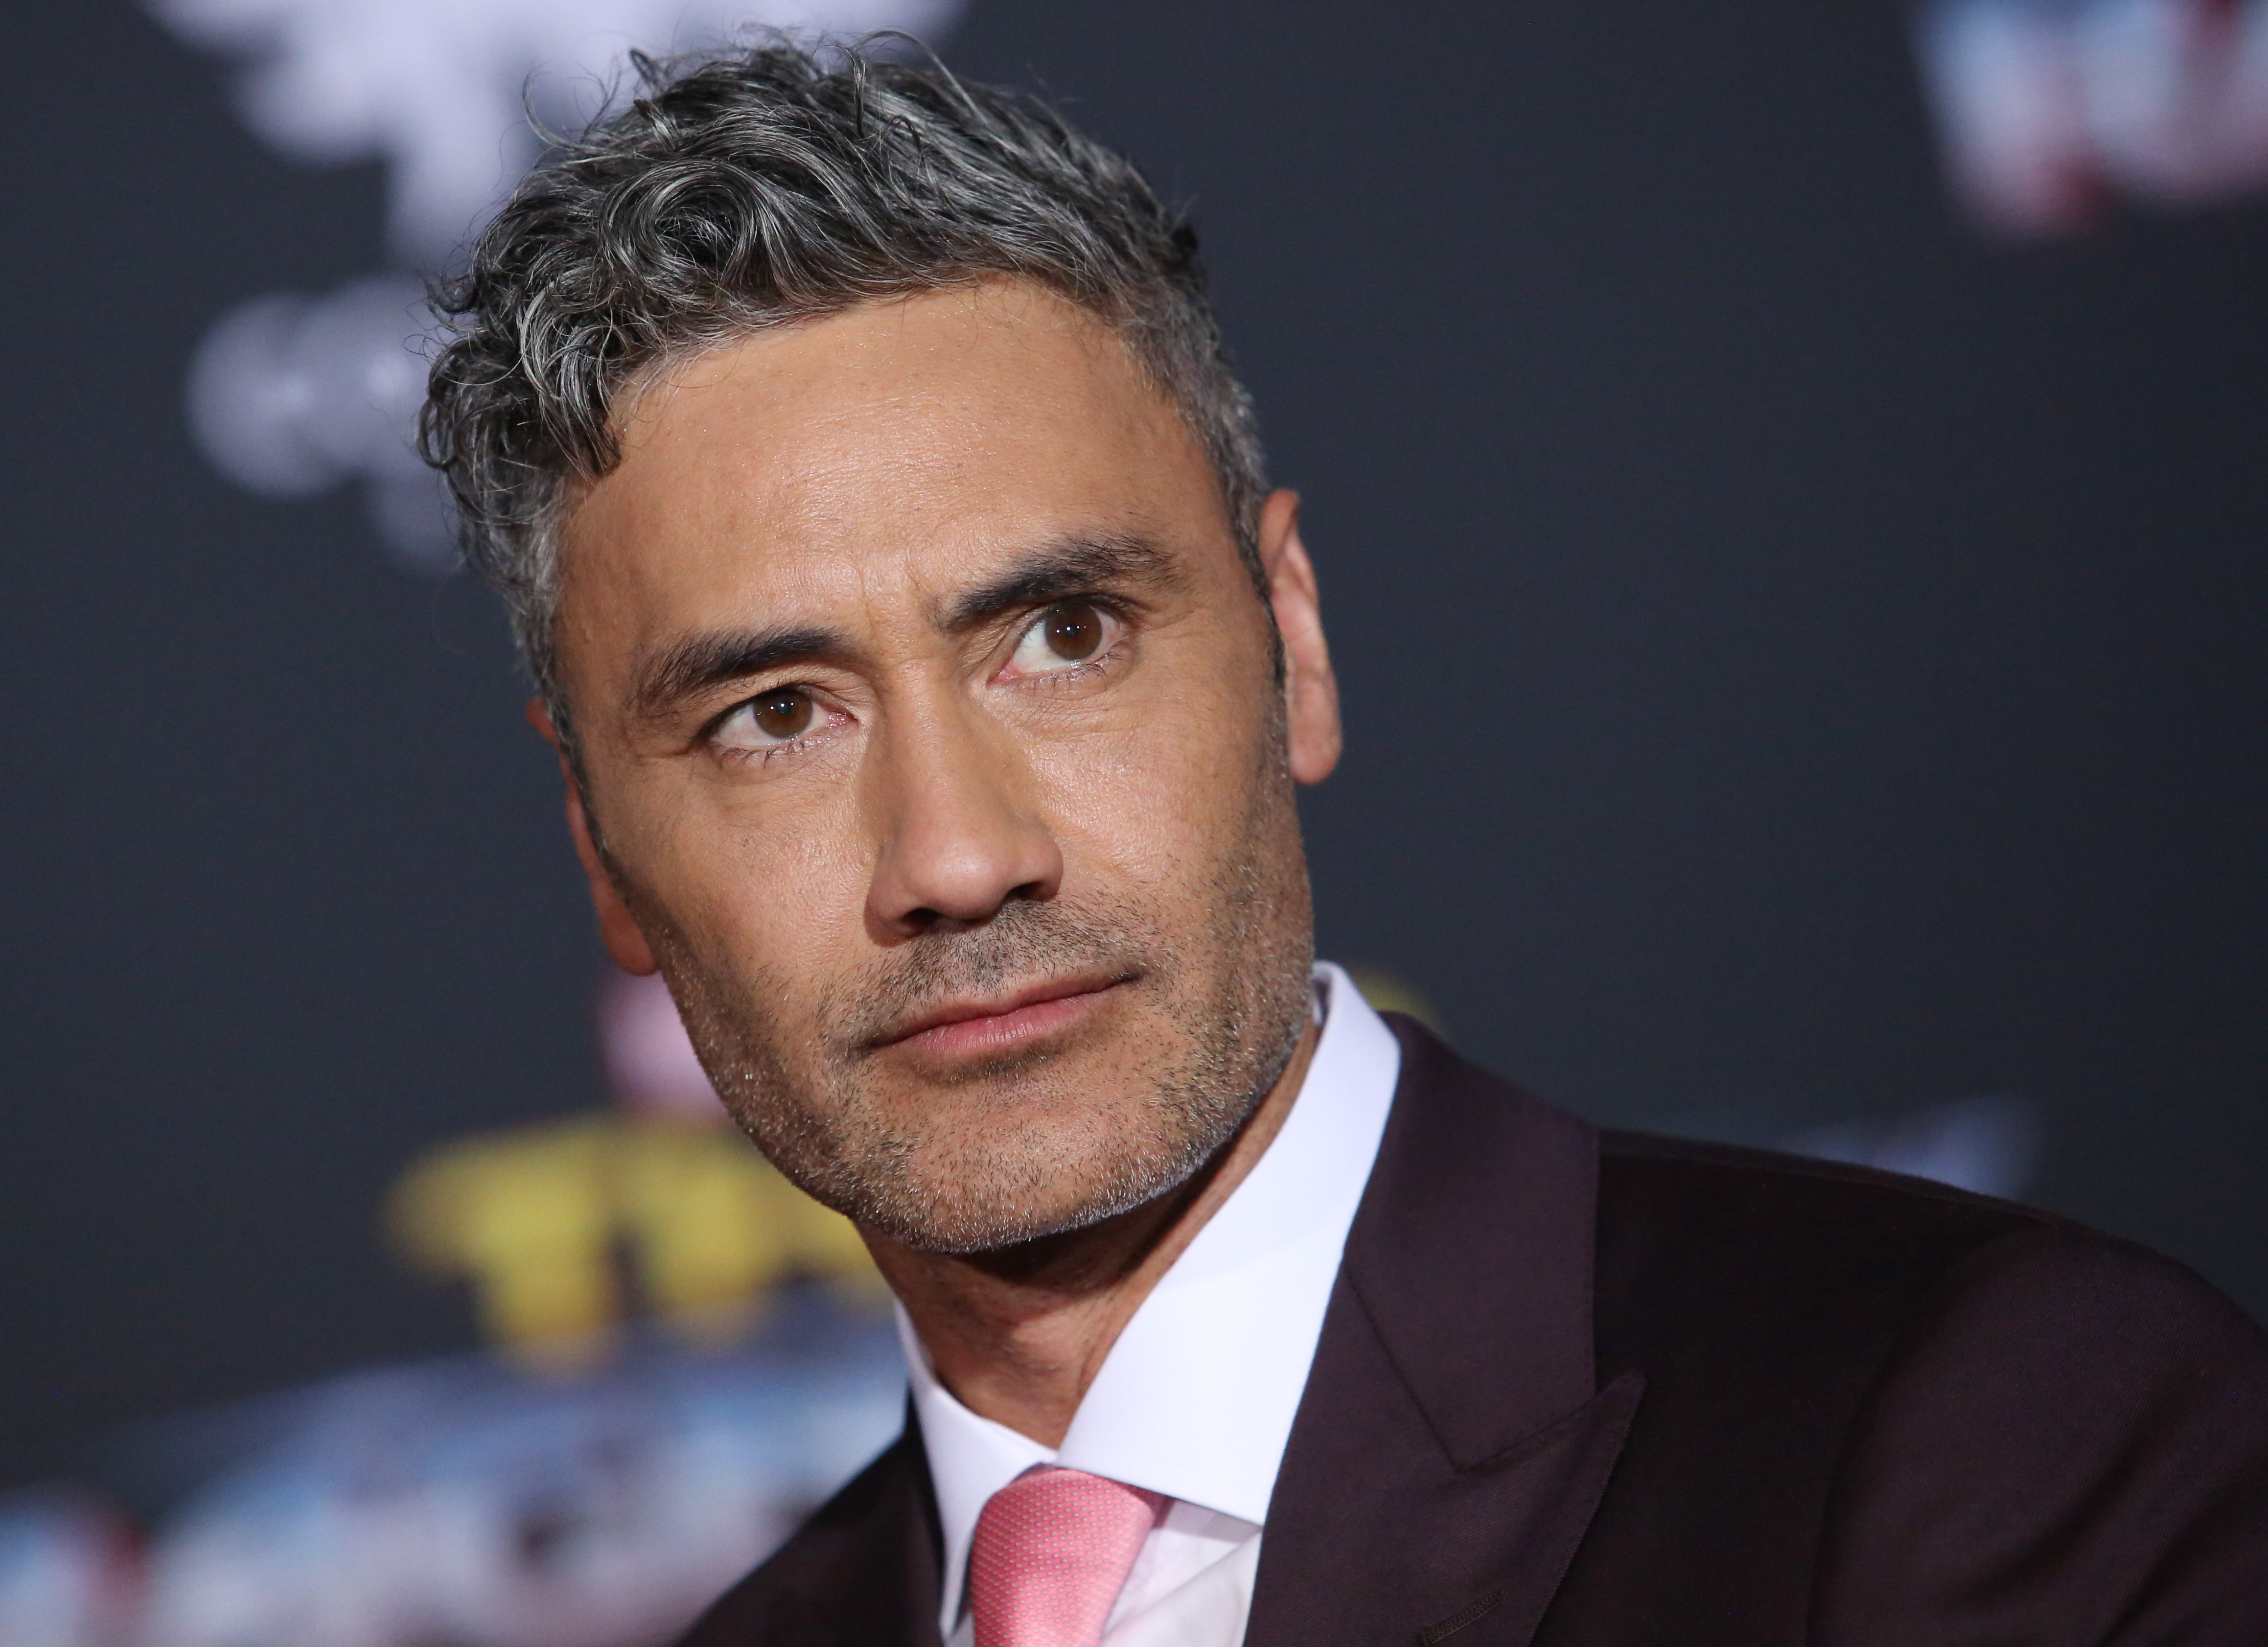 'Thor: Ragnarok' Director Taika Waititi Talks 'Akira' Remake And Whitewashing